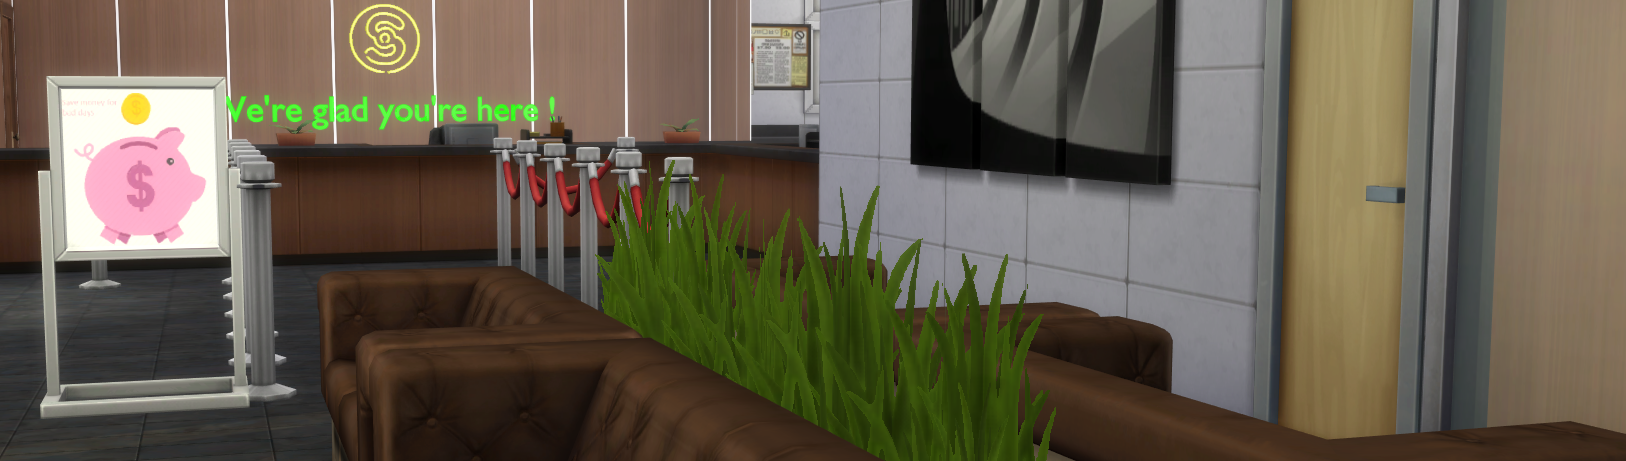 Add a Financial System to The Sims 4 with the SNBank Mod